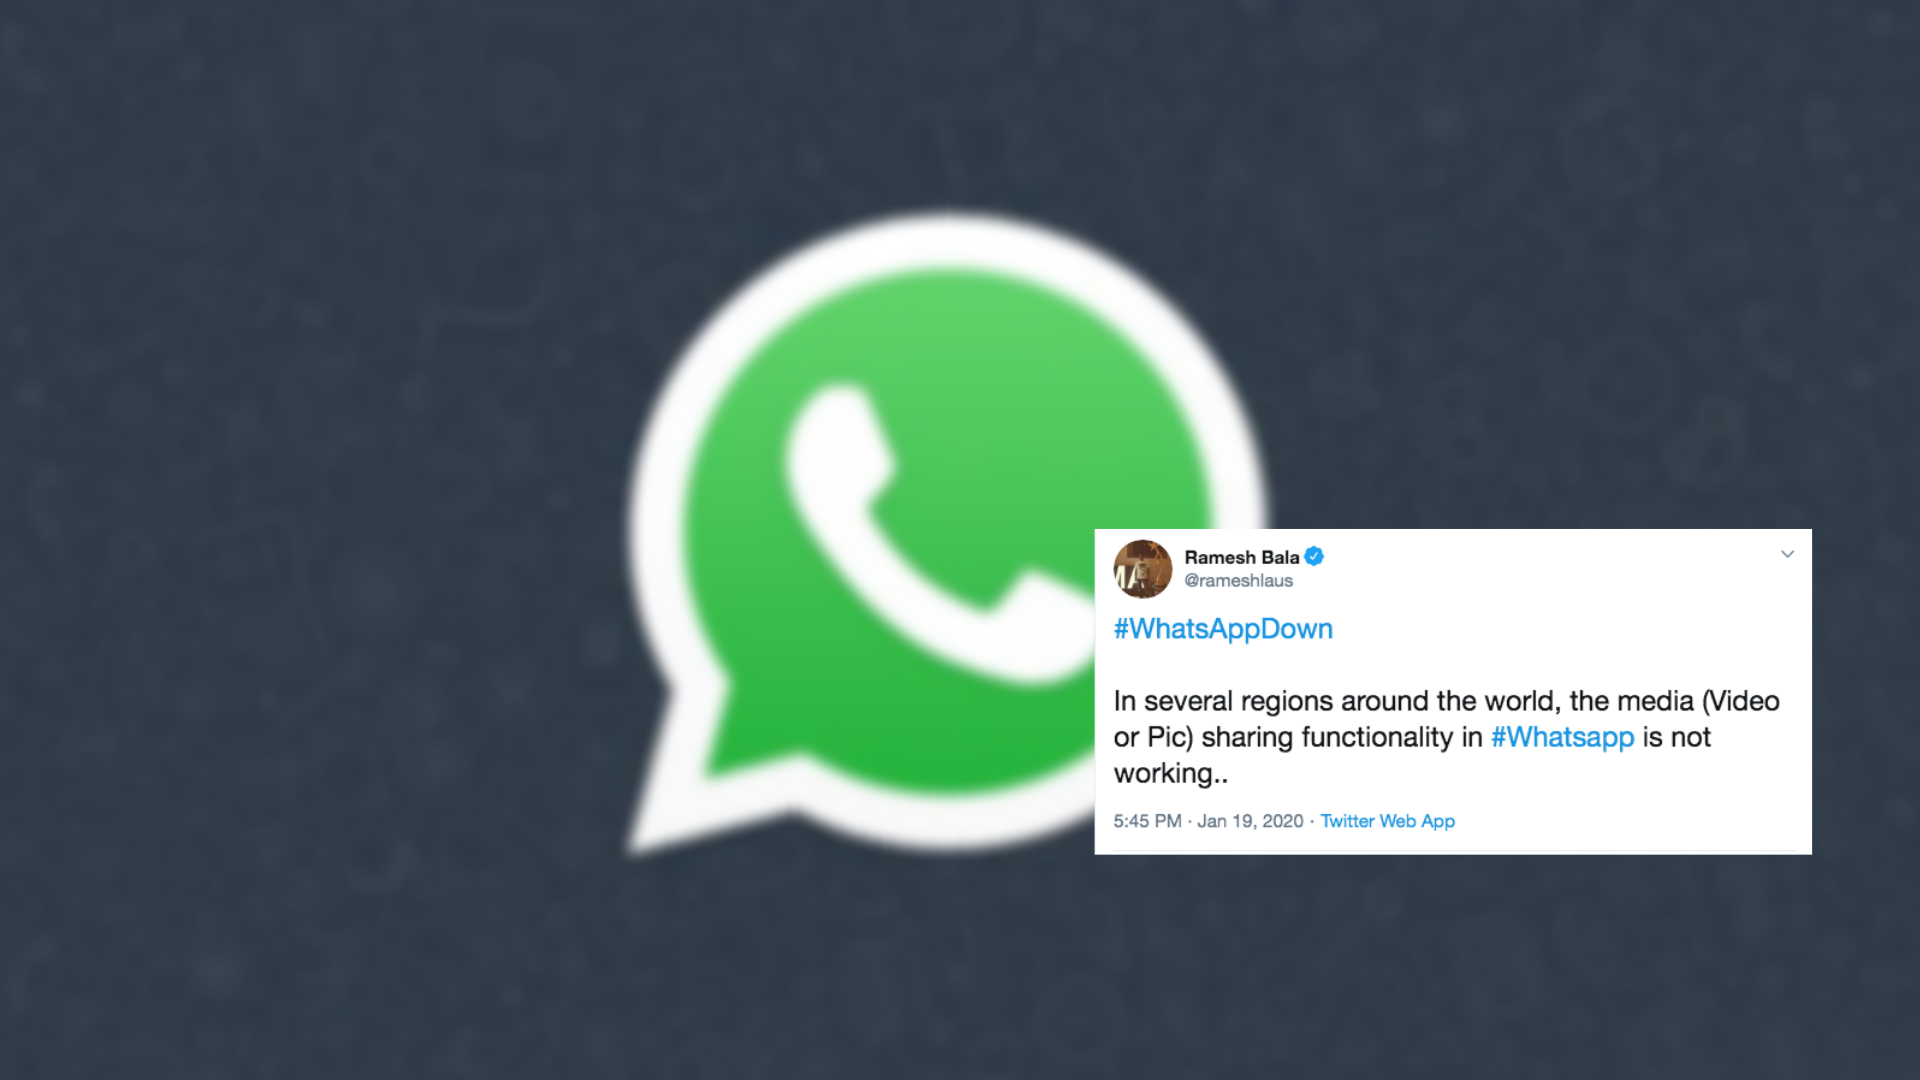 WhatsApp Down As Twitter Pokes Fun At The Messaging App